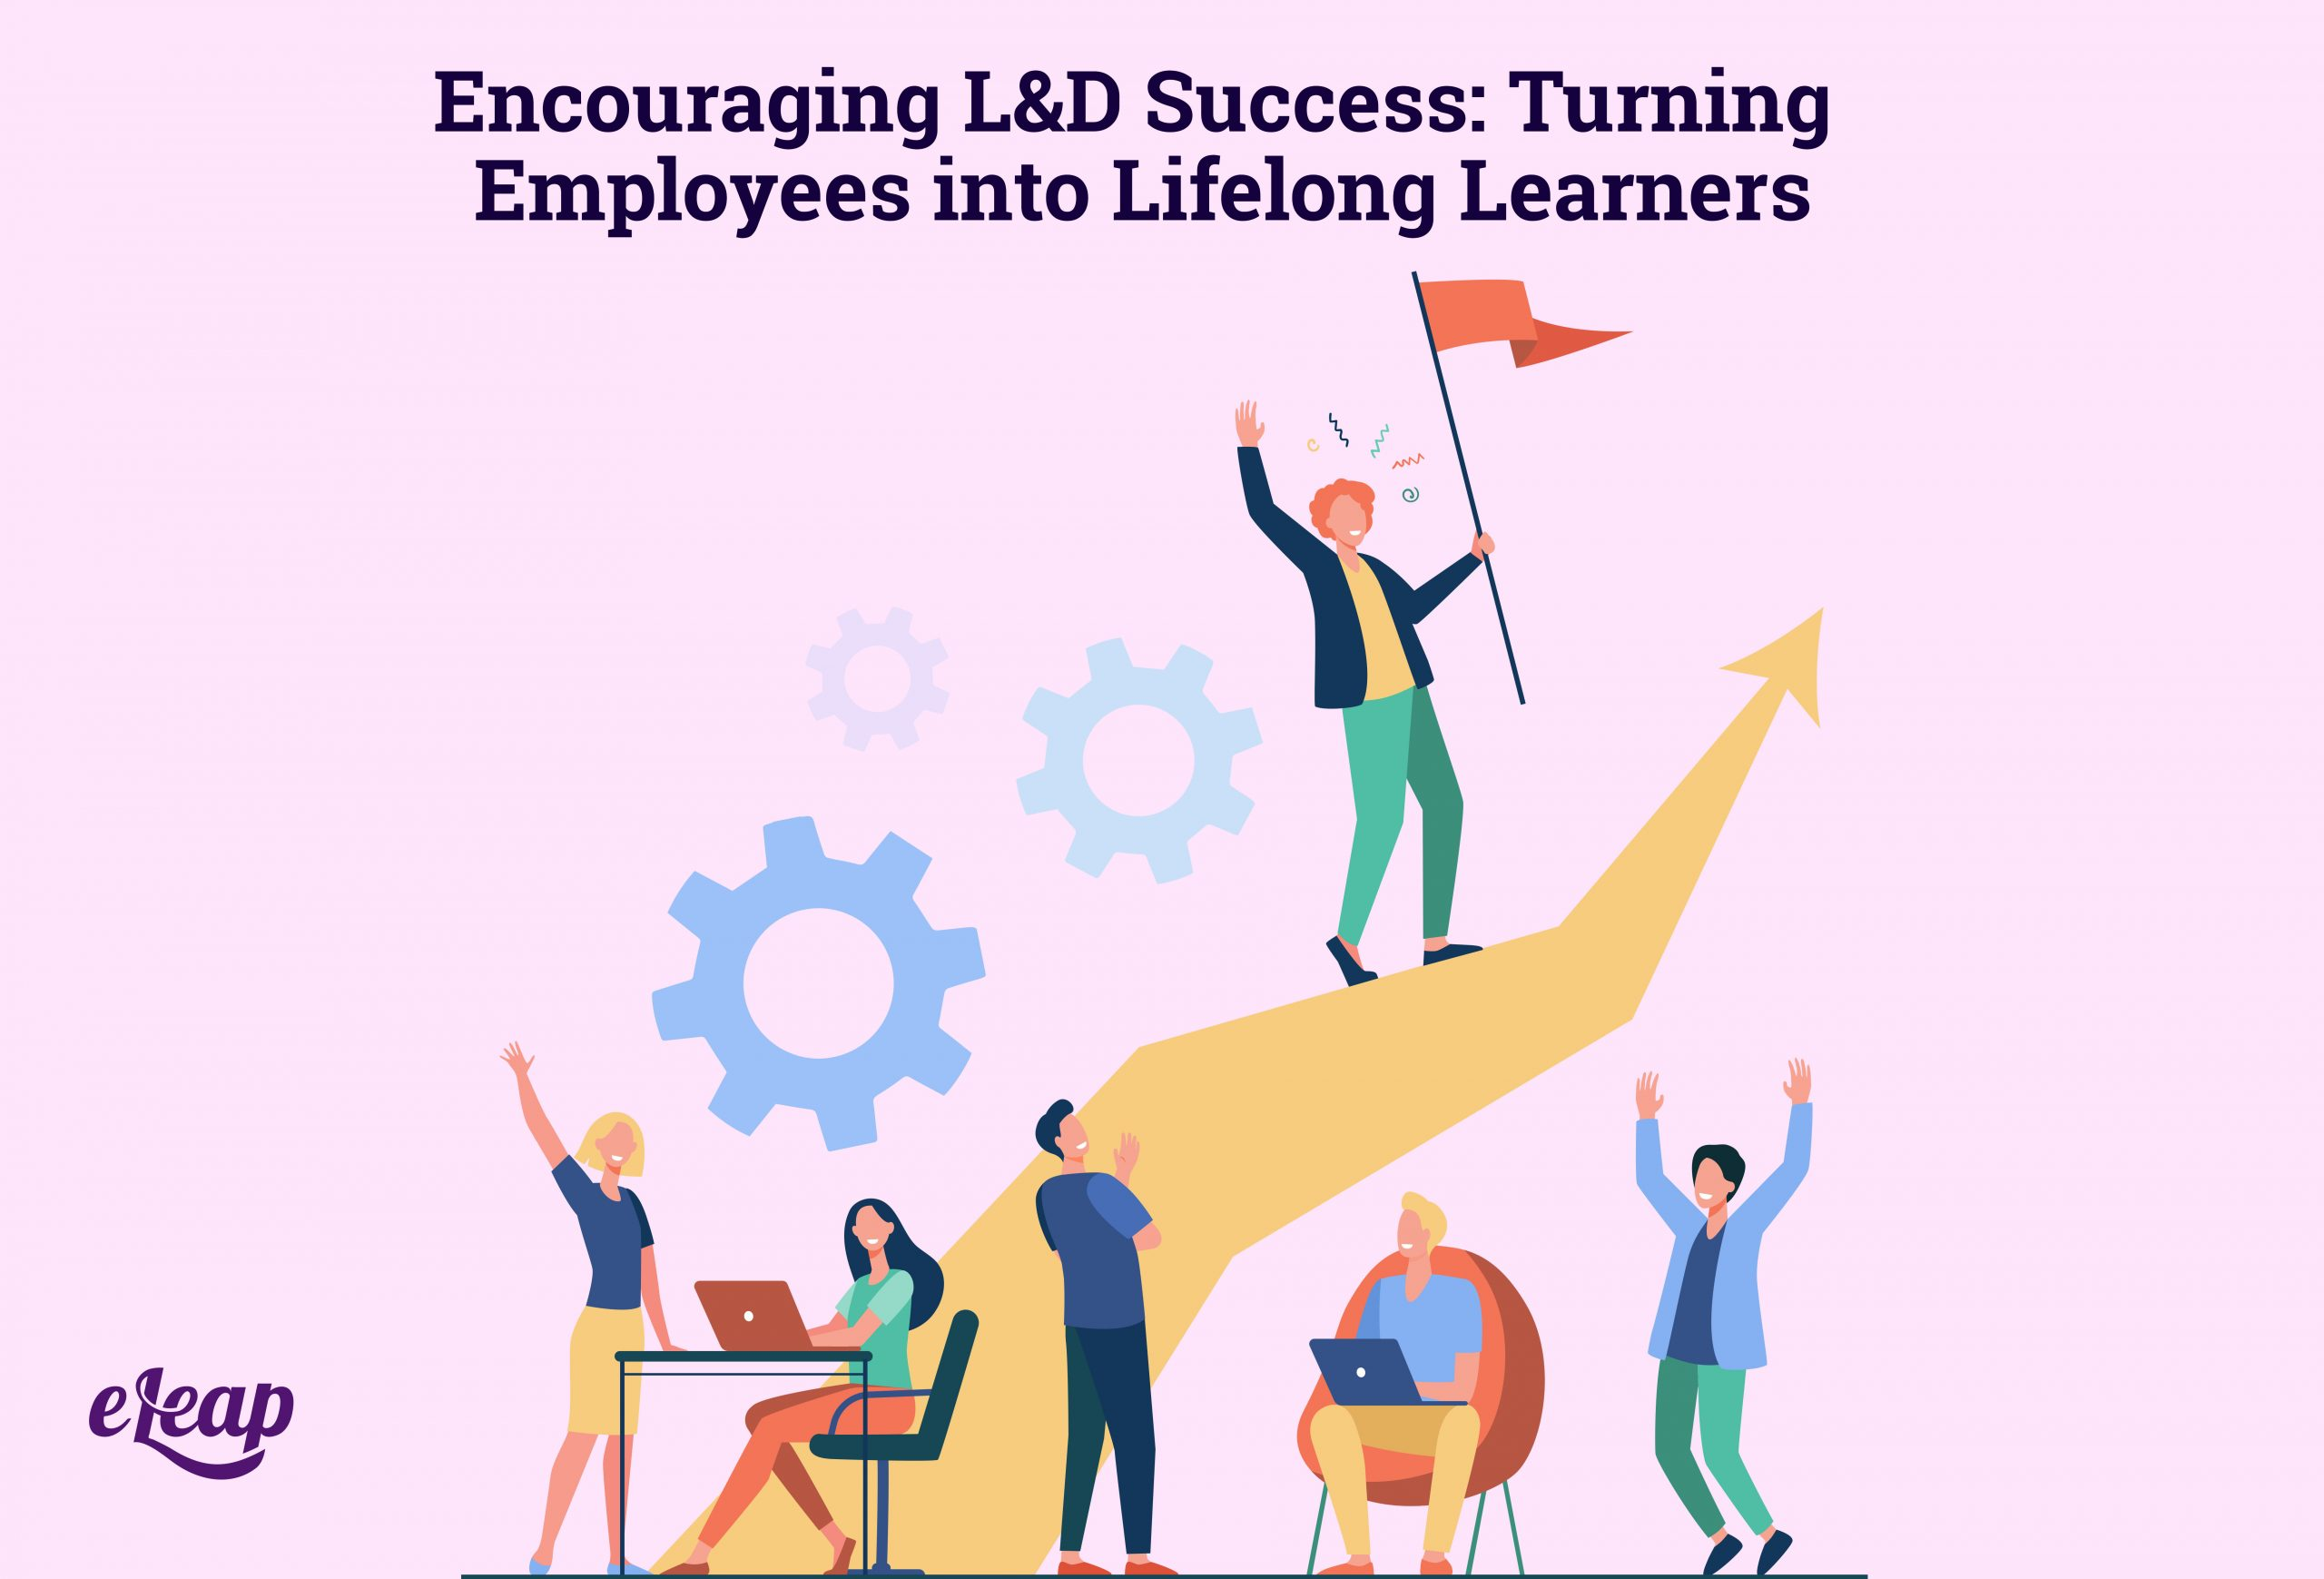 Encouraging L&D Success: Turning Employees into Lifelong Learners